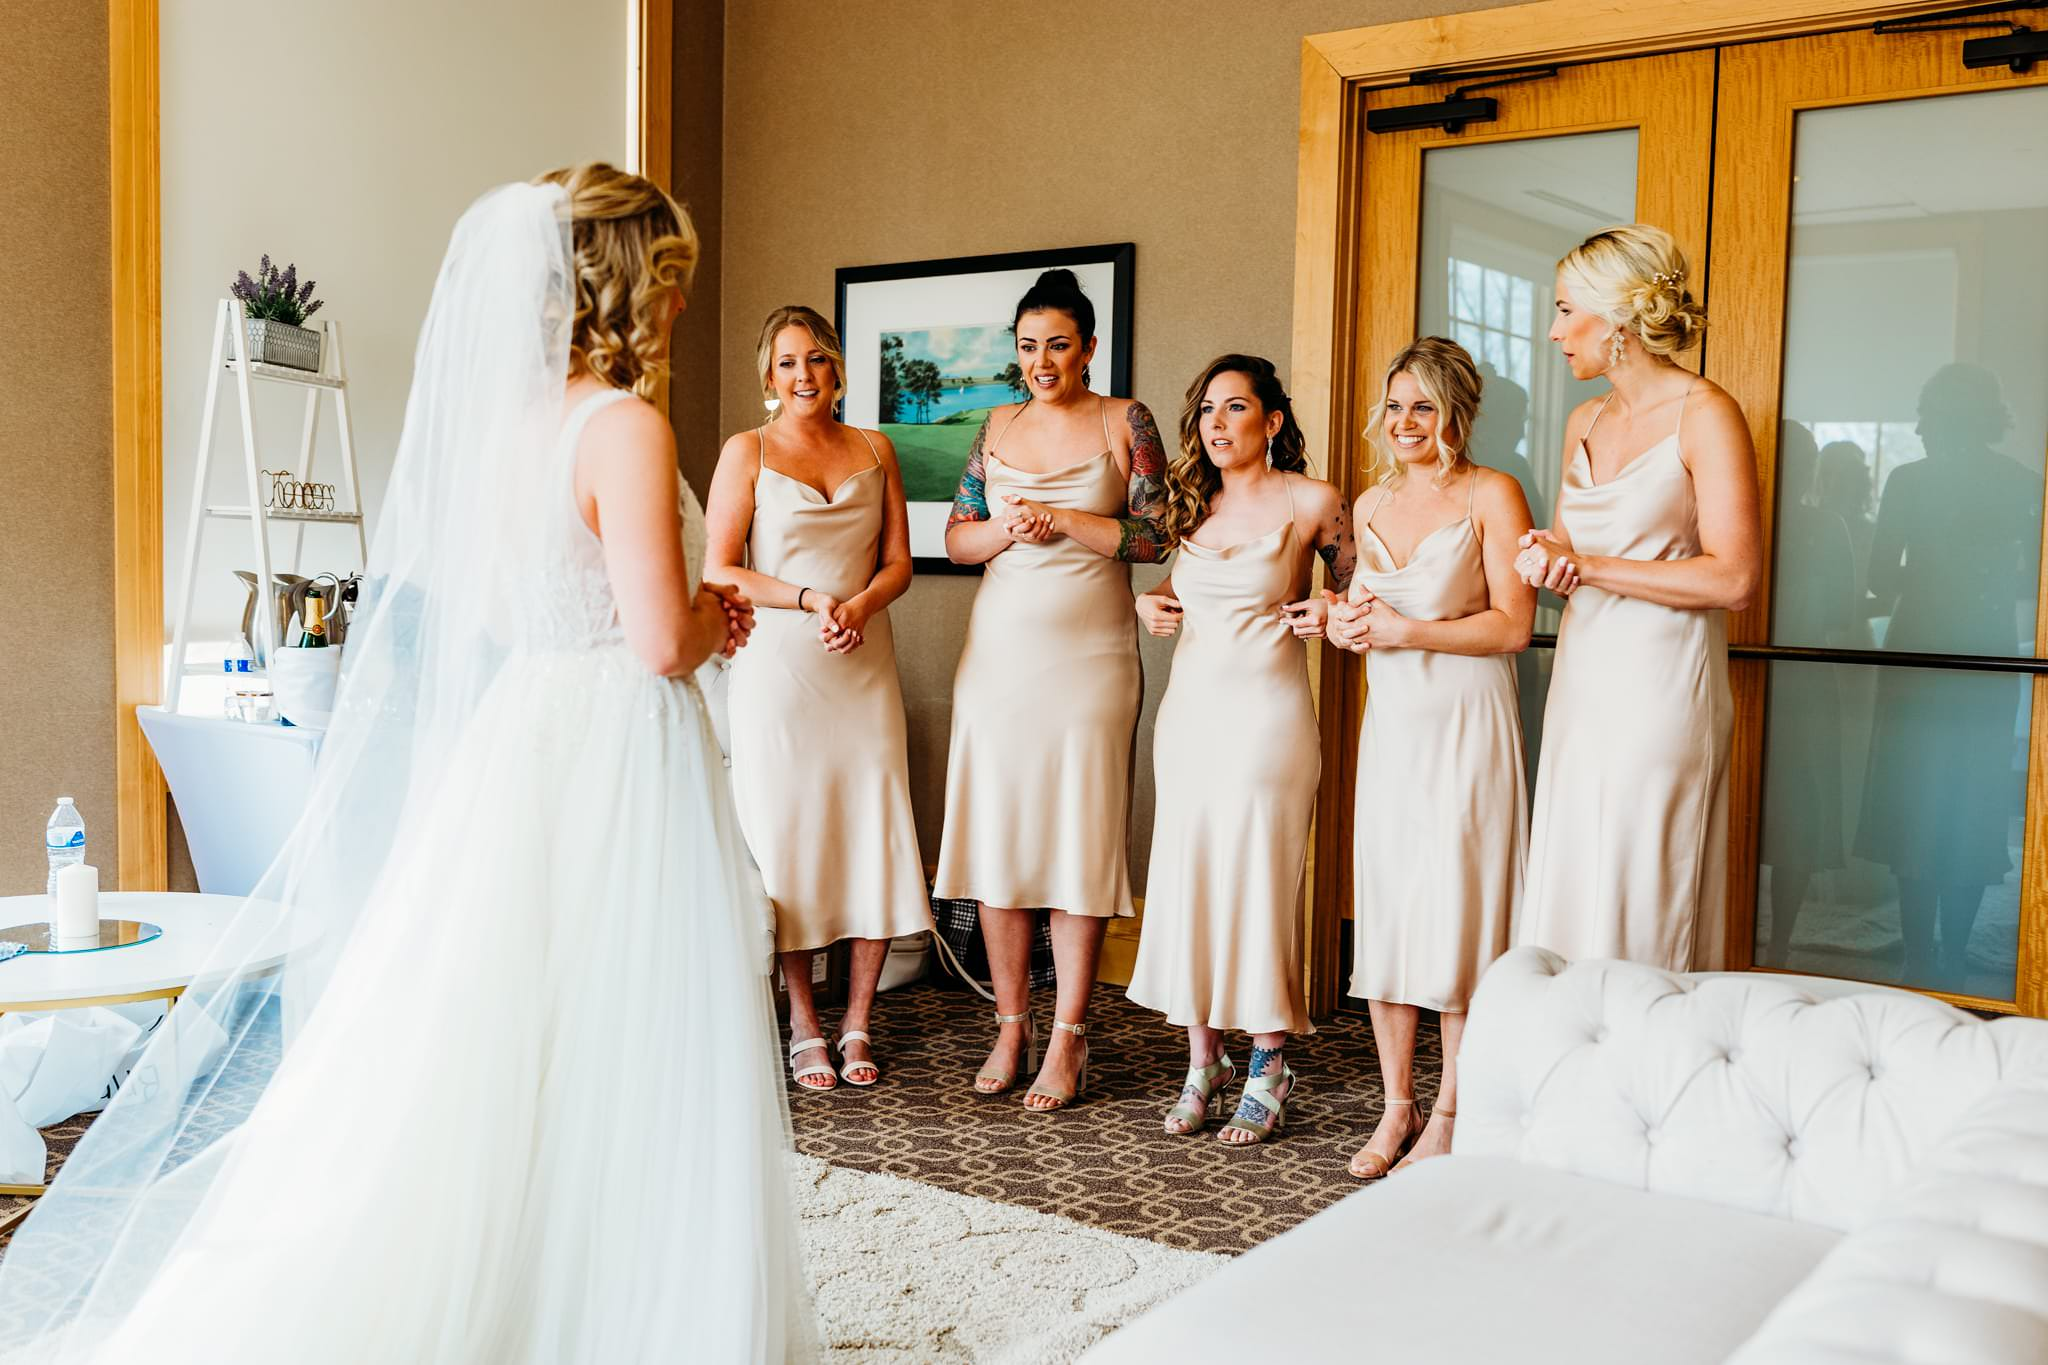 Minneapolis wedding photographer captures the moment bridesmaids see the bride in her dress for the first time.